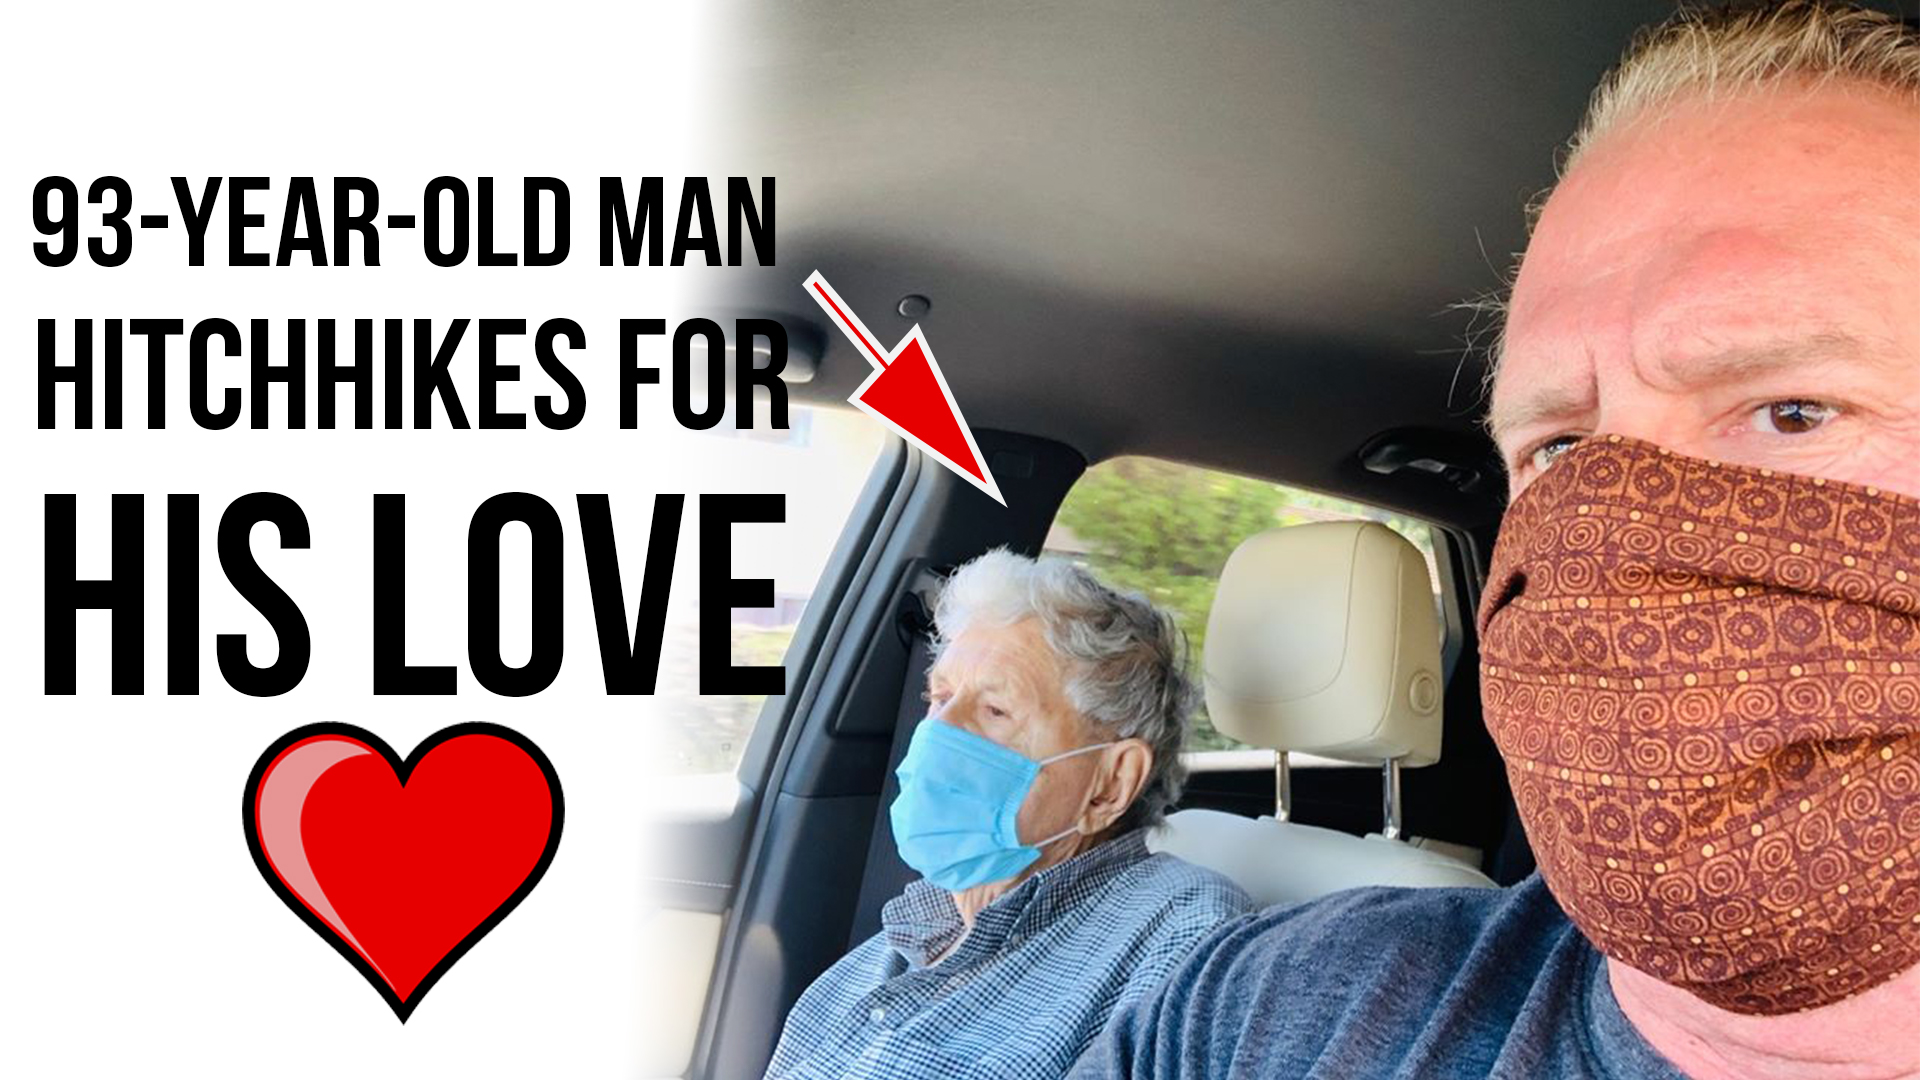 93-Year-Old Man Hitchhikes For His Love!